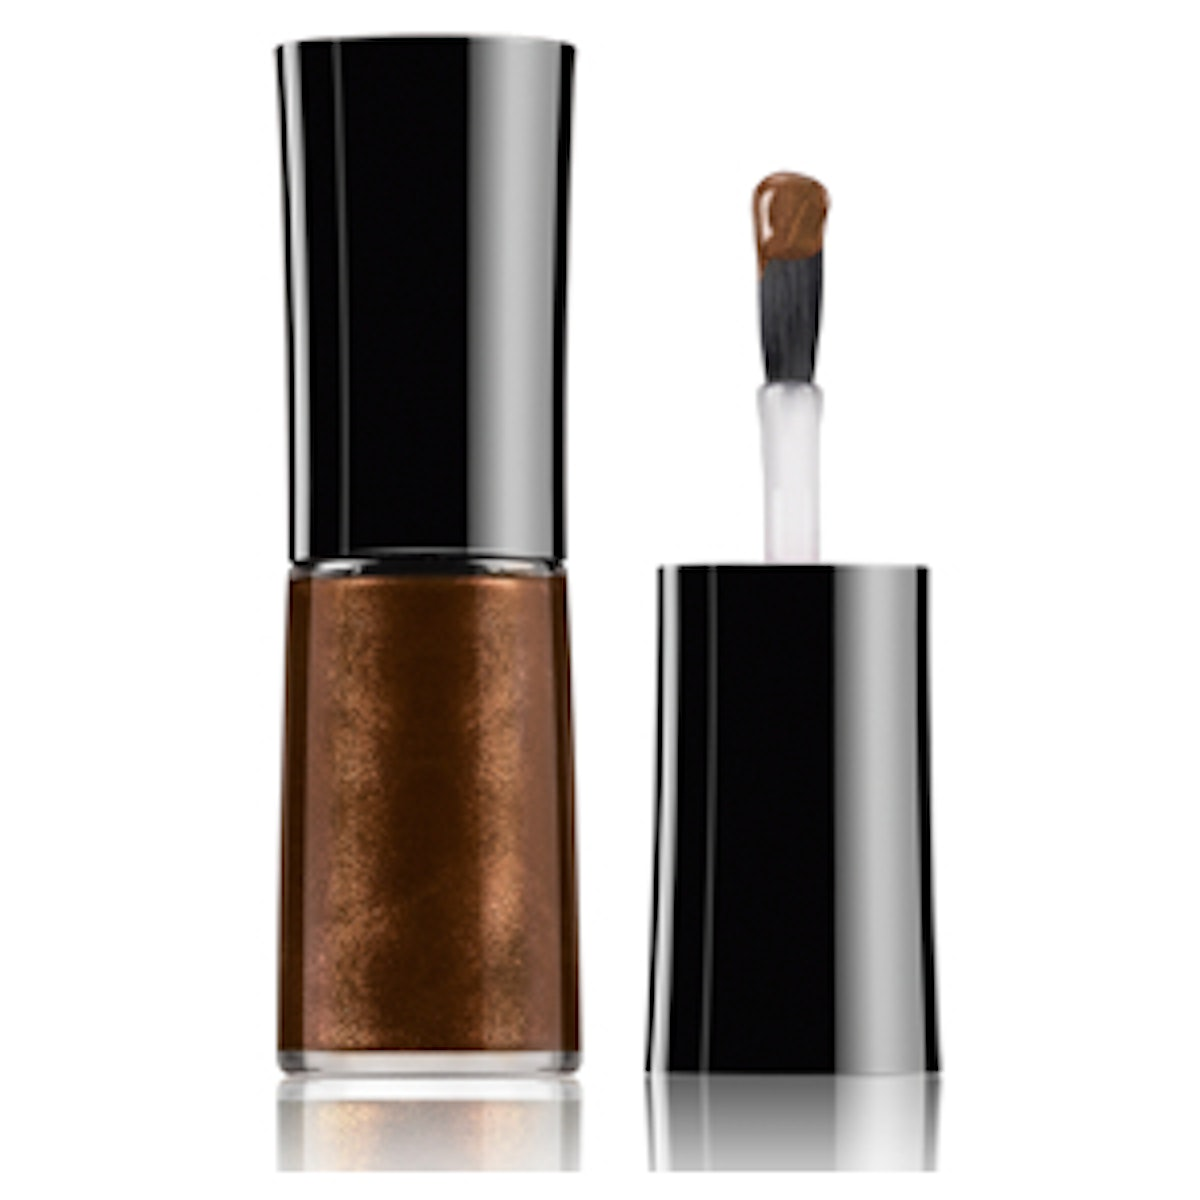 Nail Lacquer in Runway